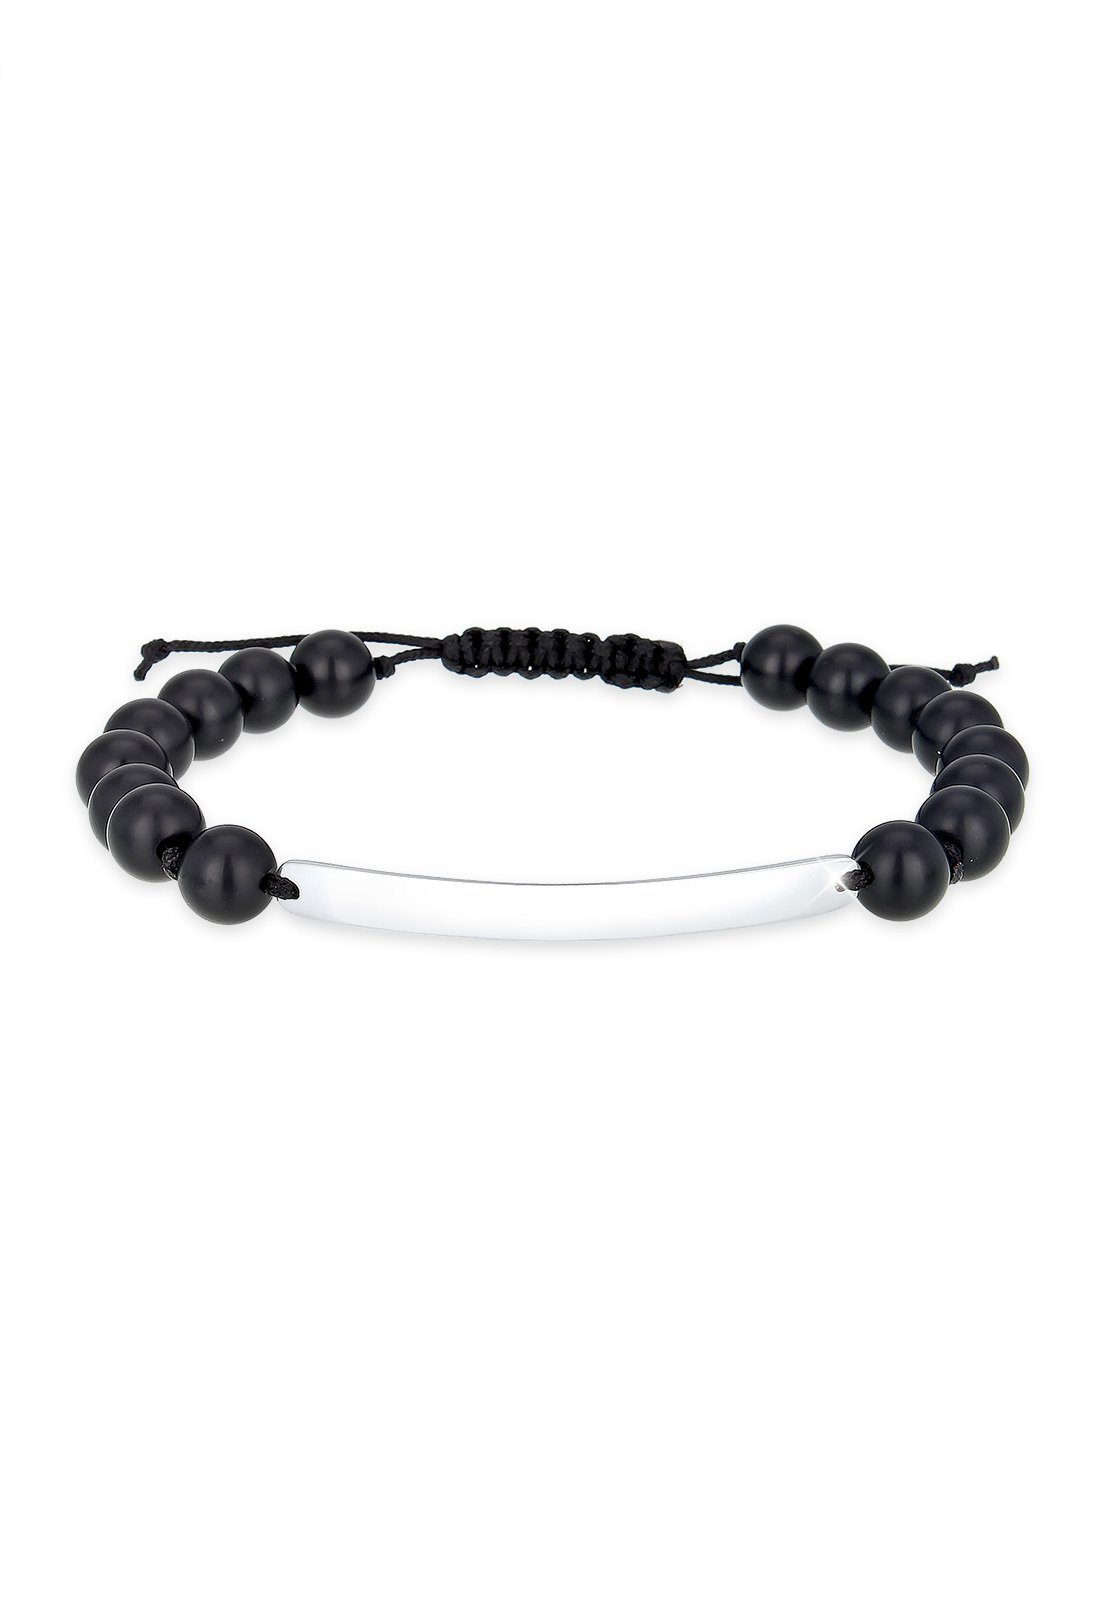 Paulo Fanello Armband »Onyx Edelstein Nylon 925 Sterling Silber«